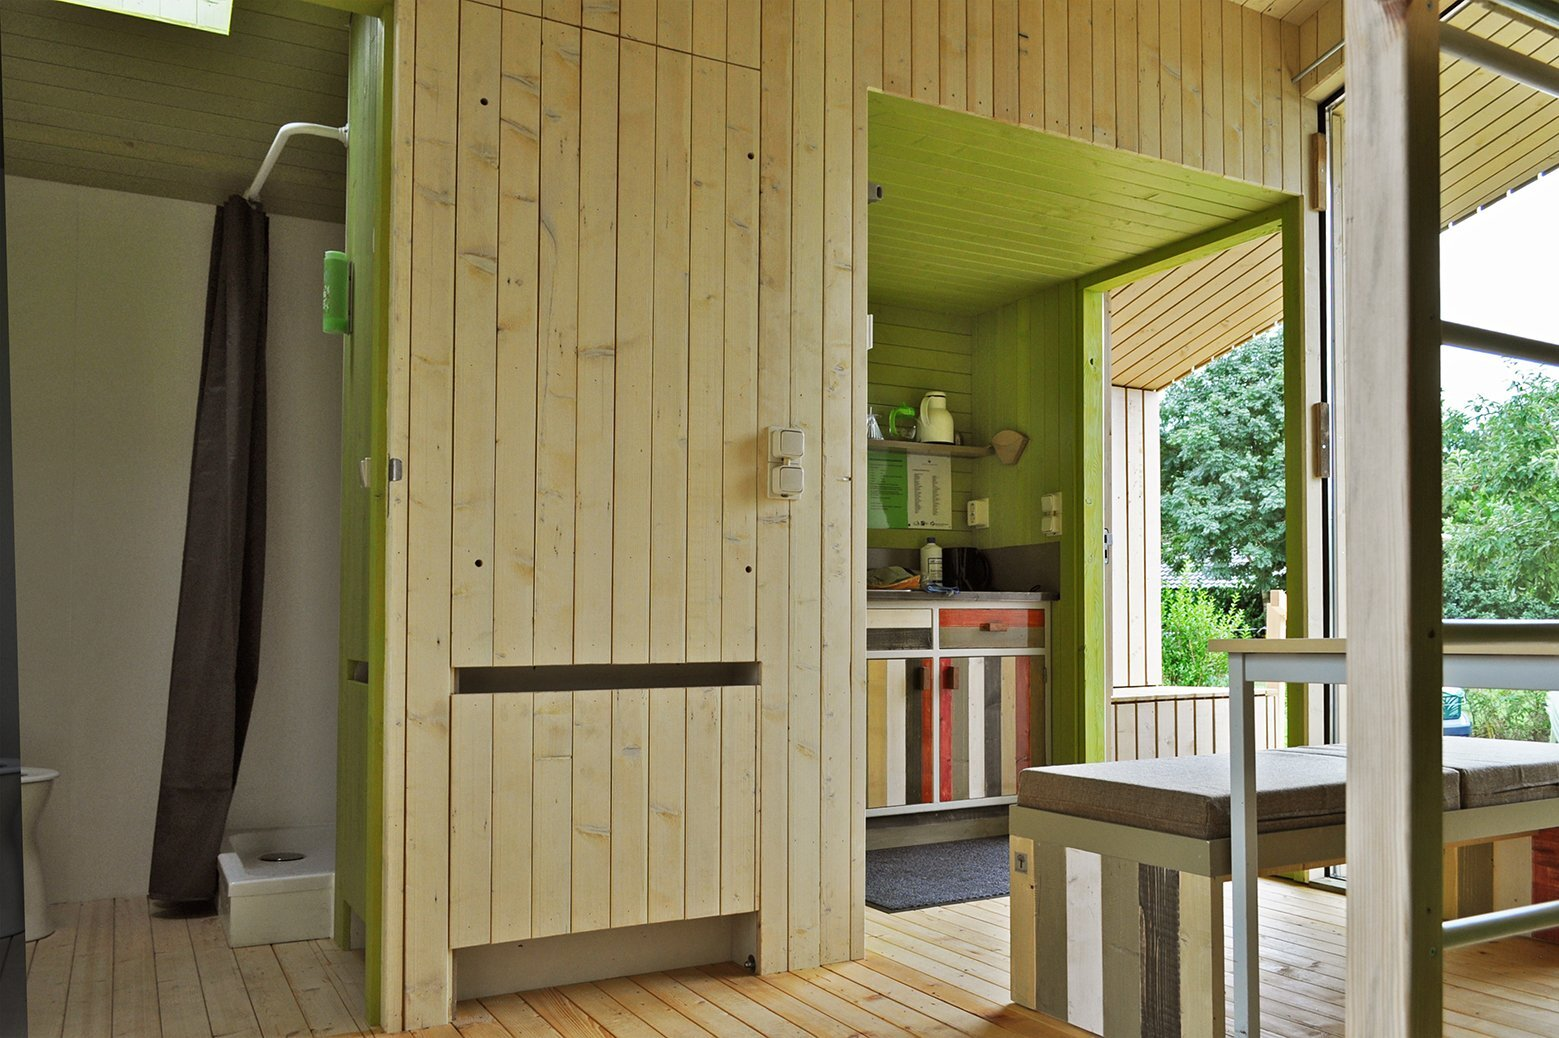 Treck-In Hickers Cabins - Small Cabin - MoodWorks Architecture - Kristel Hermans Architectuur - The Netherlands - Kitchen and Bathroom - Humble Homes